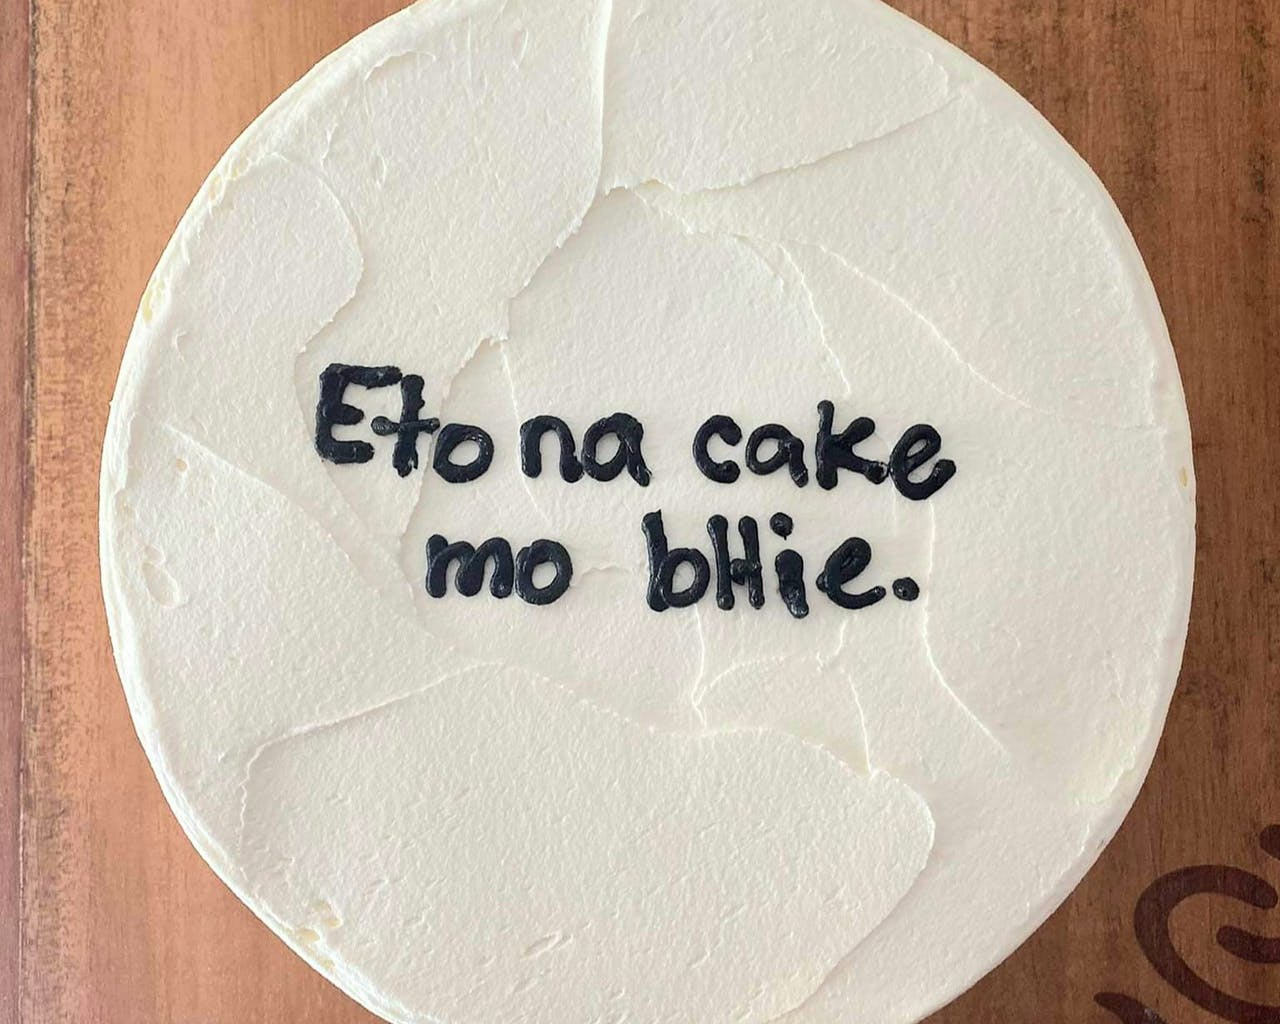 Say It With A Cake: Where To Order Witty Dedication Cakes For Every Occasion